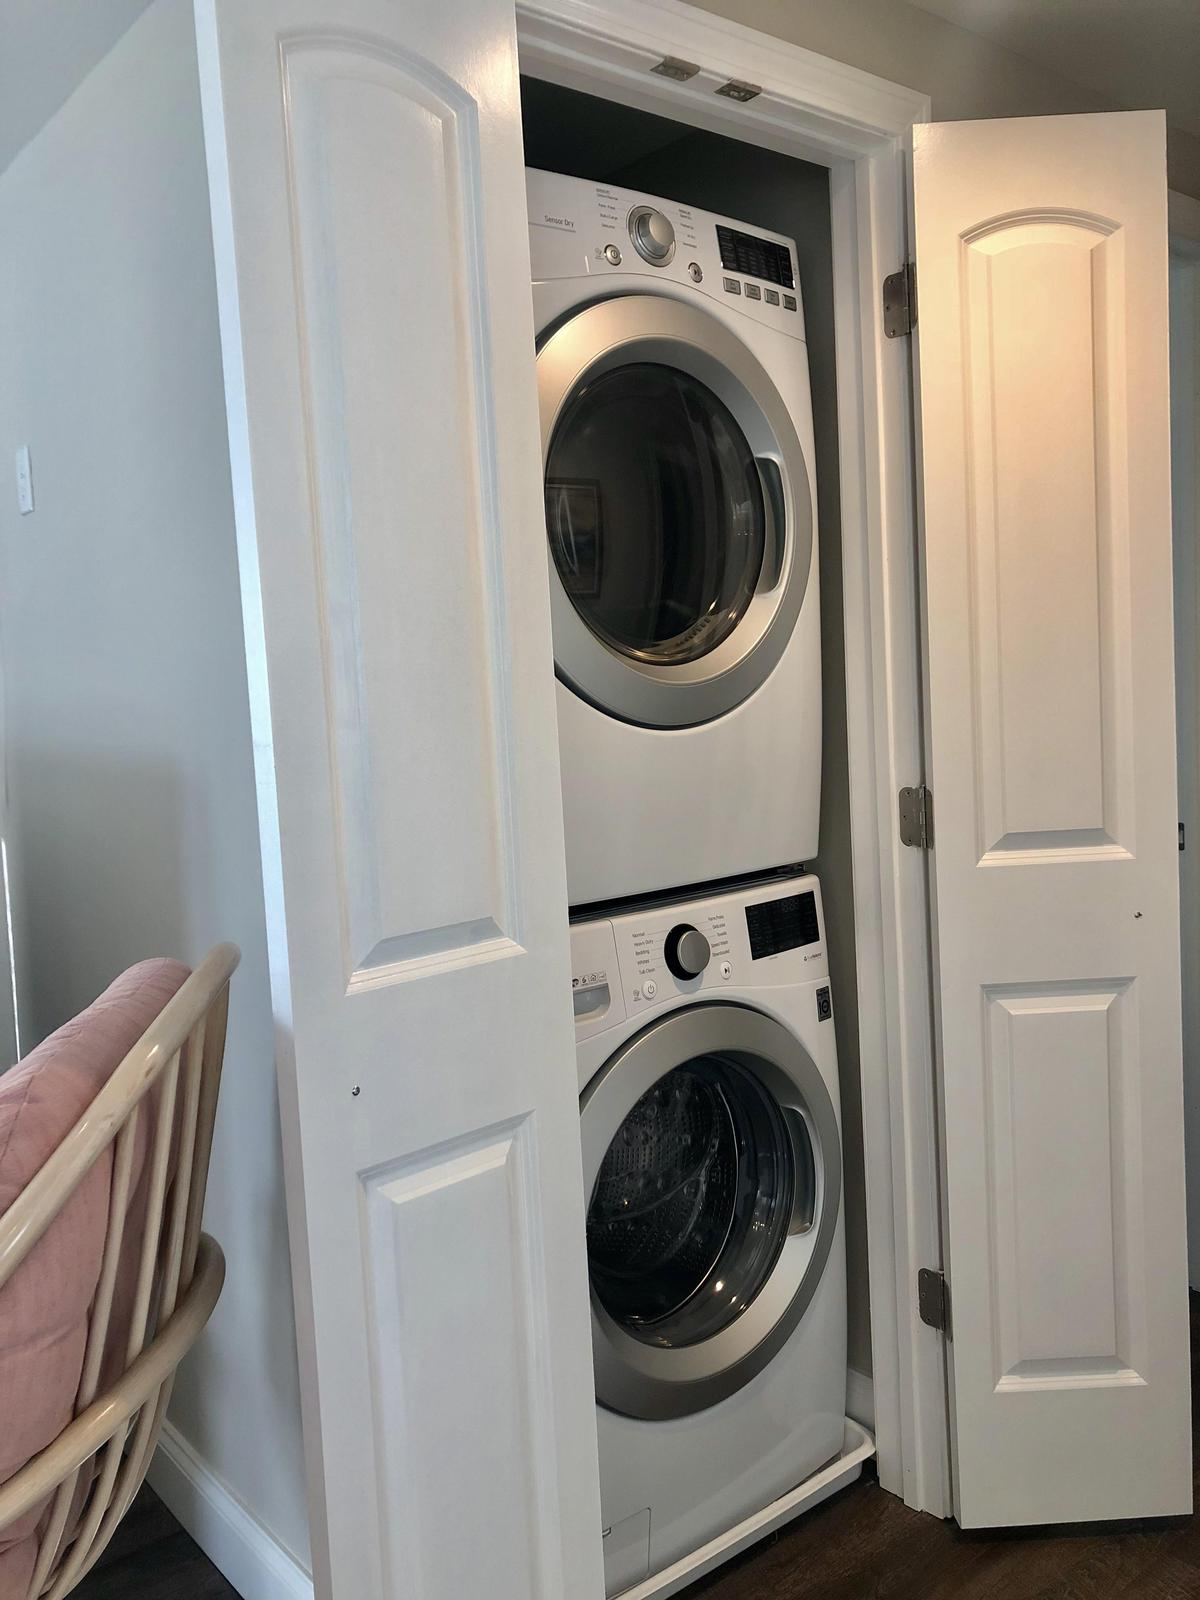 Laundry closet with full washer and dryer